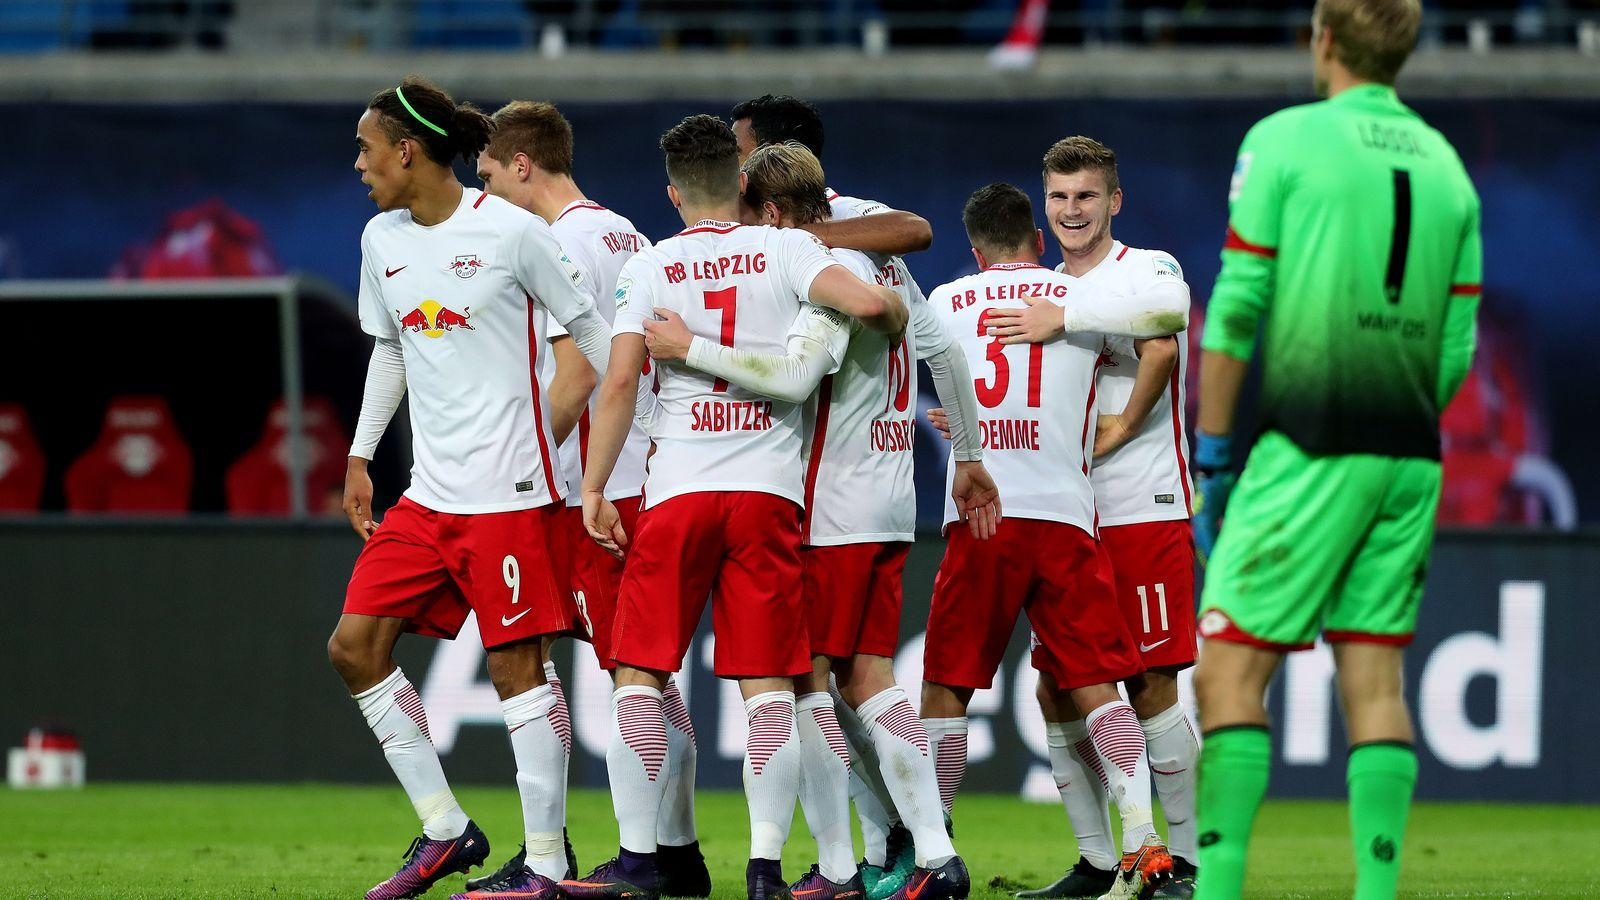 RB Leipzig gets in on the Mannequin Challenge